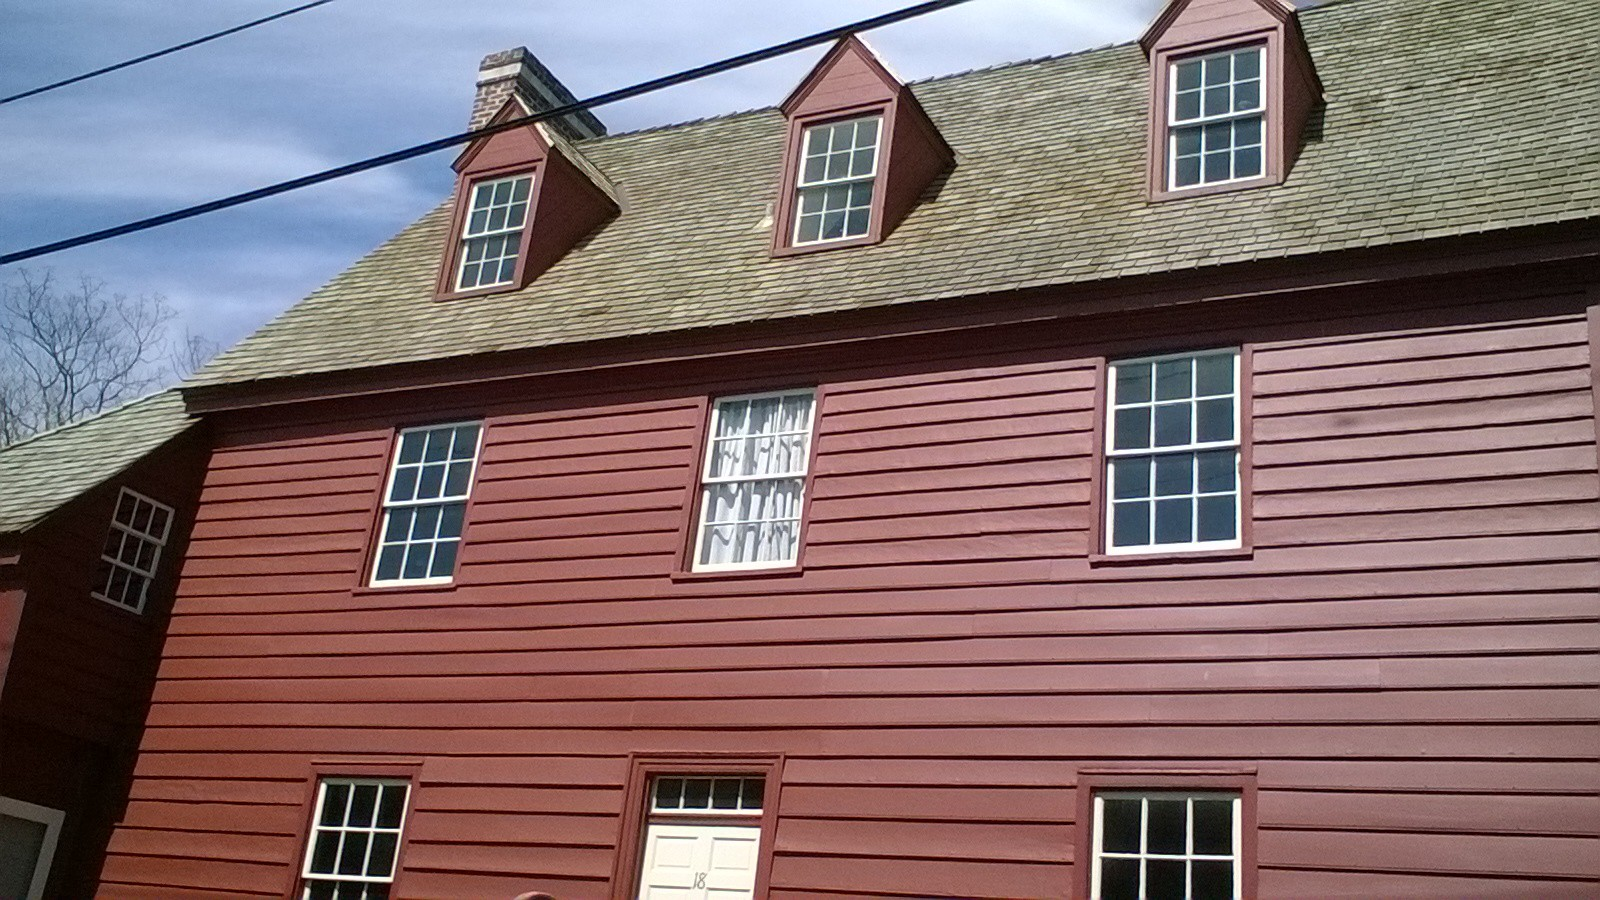 The On-Line Buzzletter: Our Annapolis Haunted Encounters